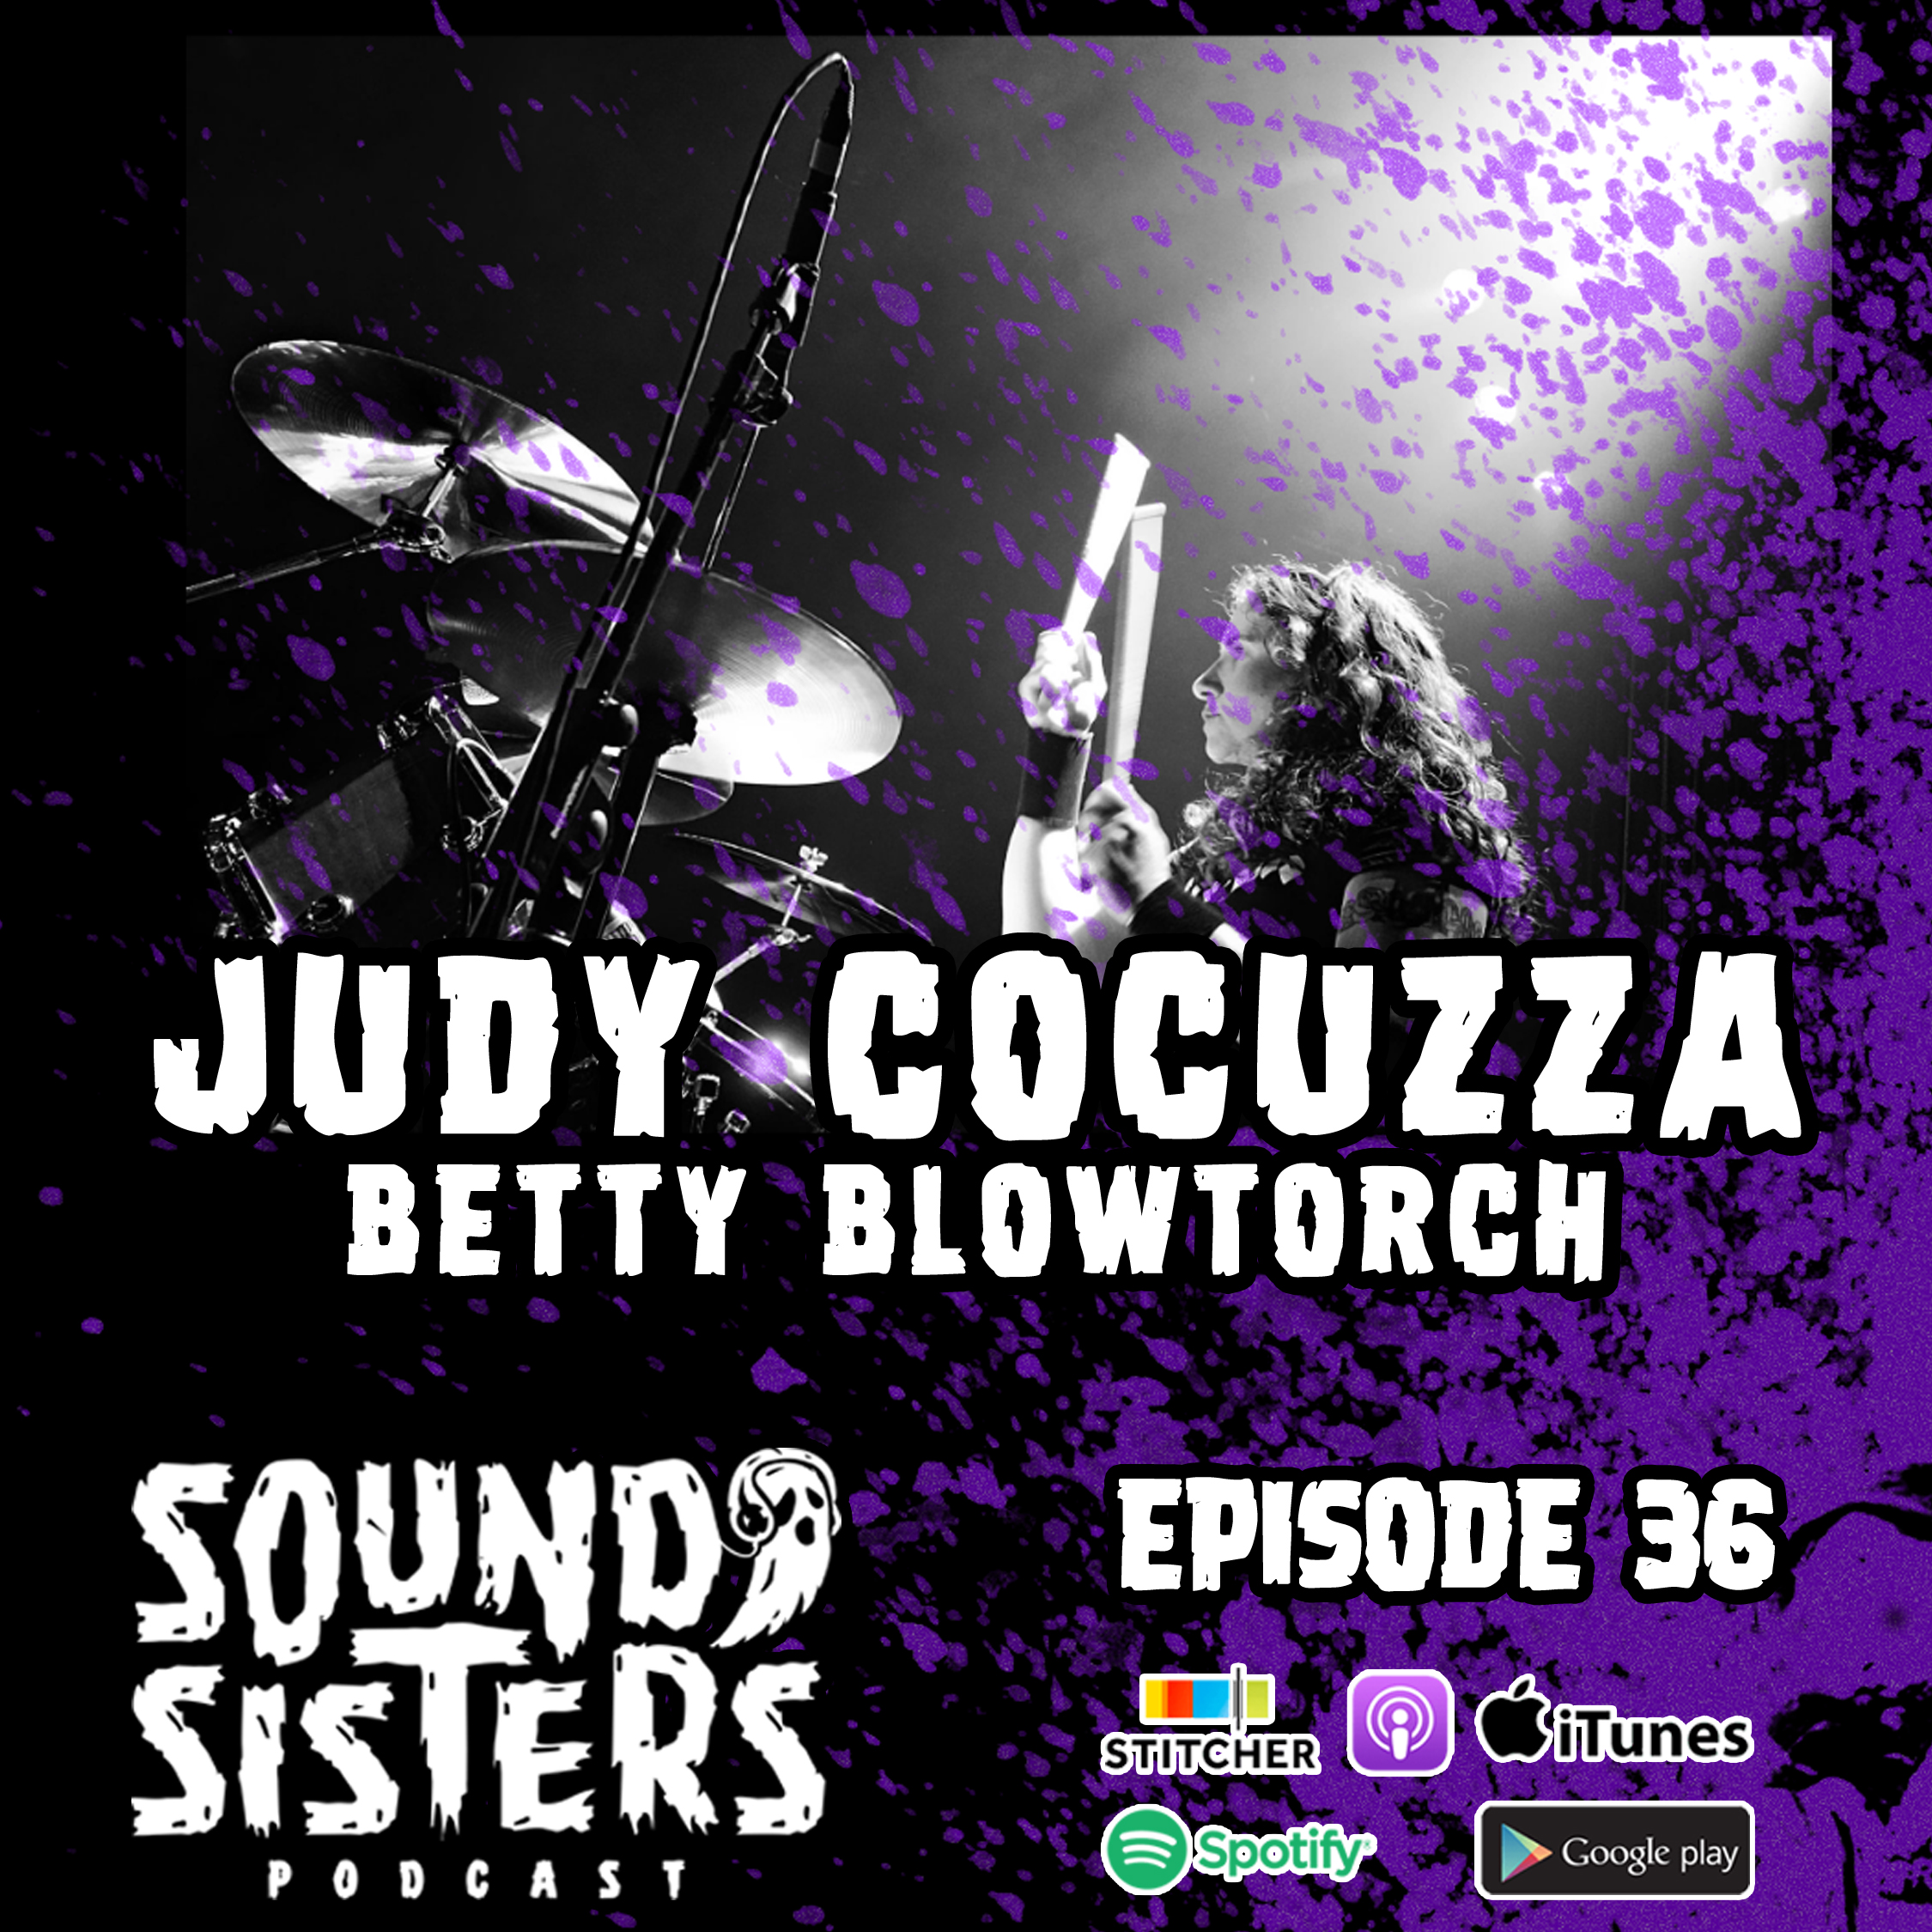 Sound Sisters Podcast Episode 36 – Judy Cocuzza of Betty Blowtorch